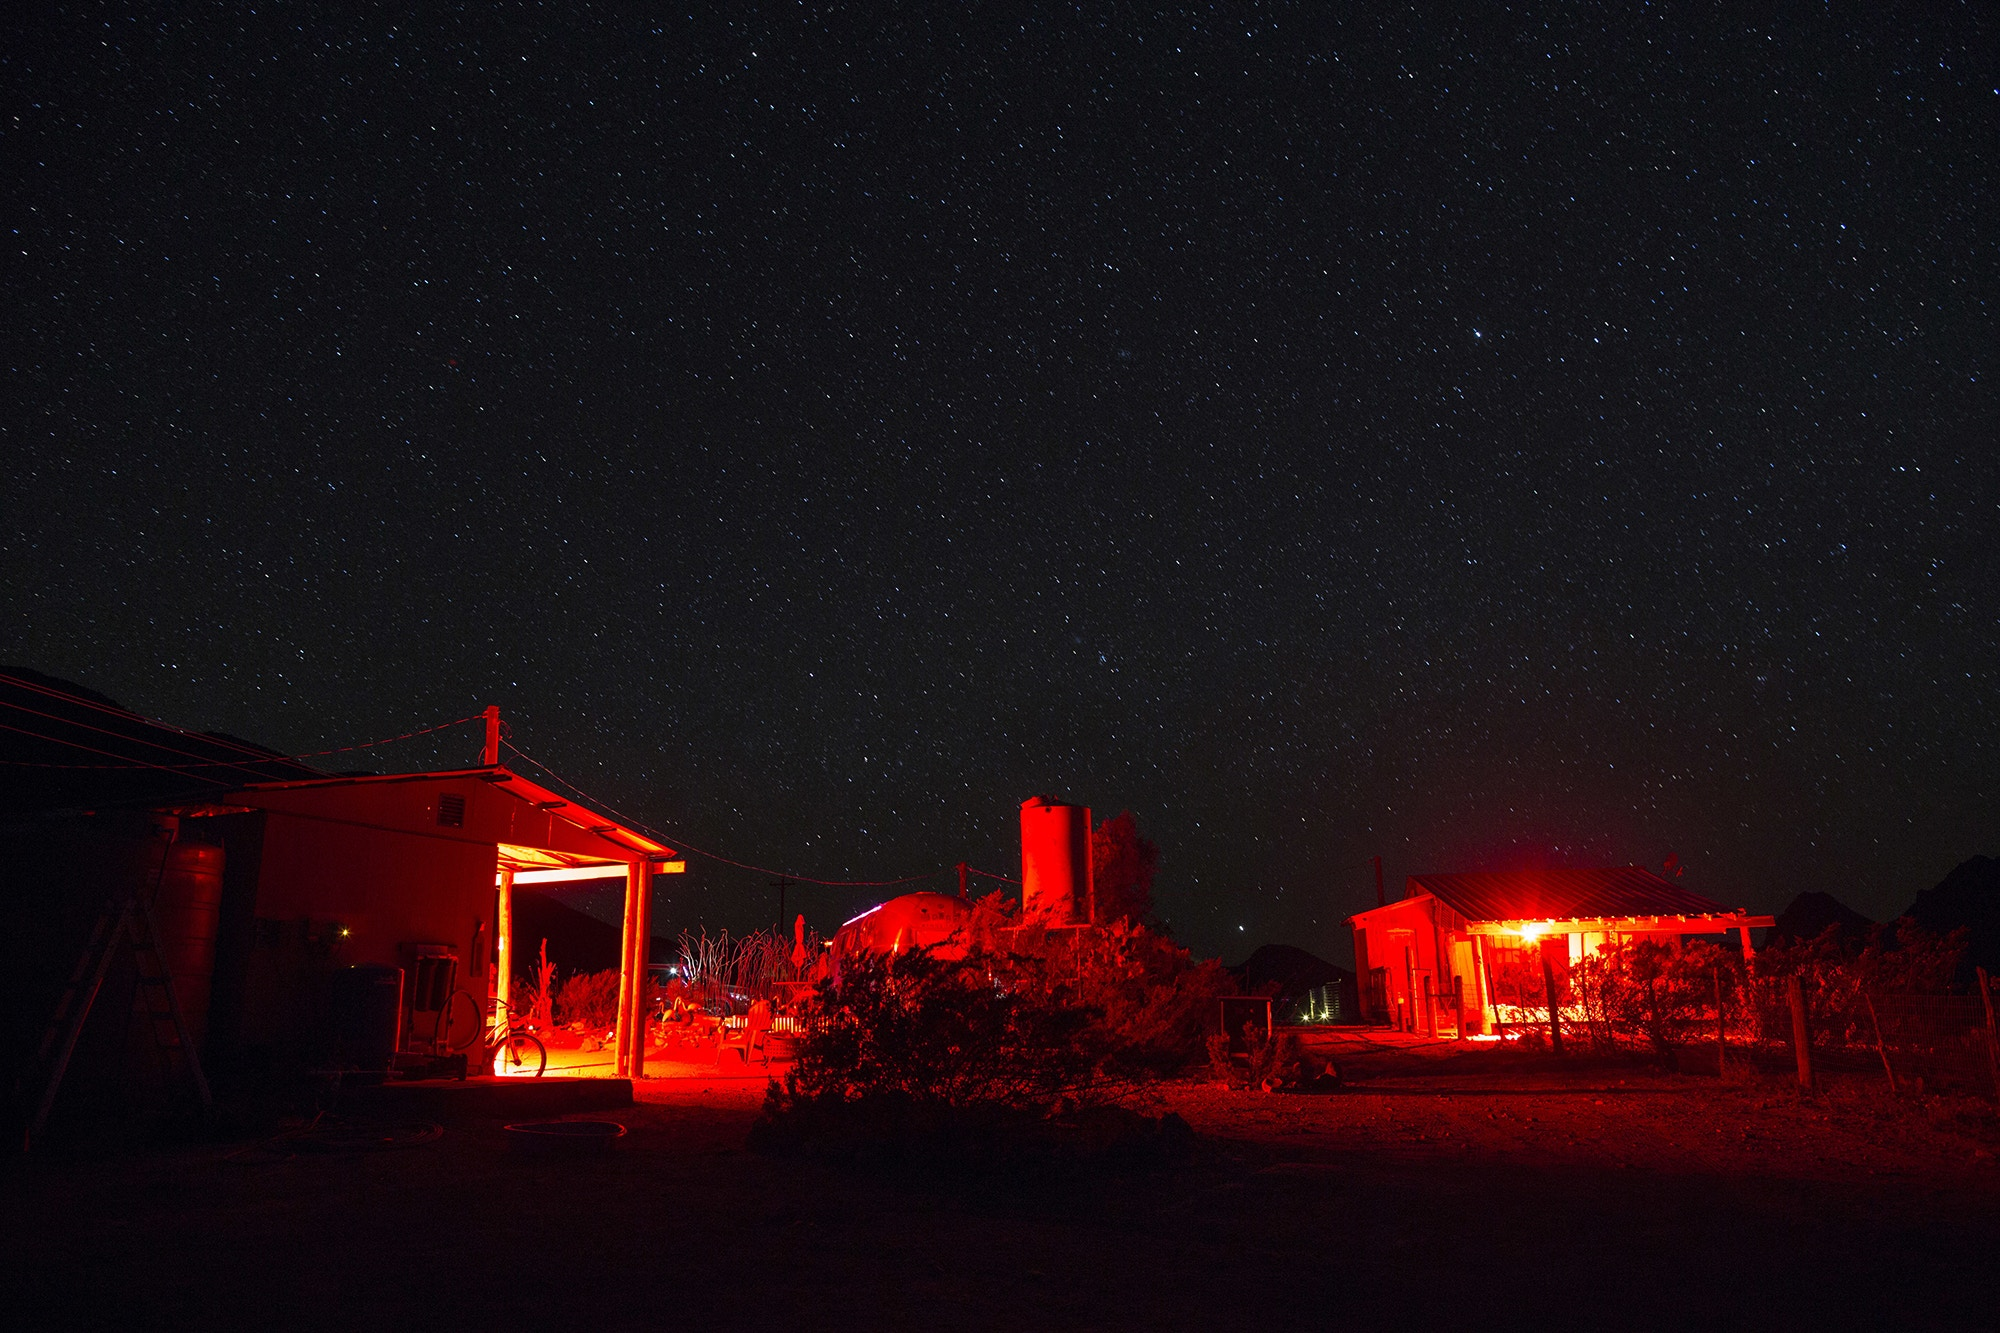 Stars fill the sky over Tin Valley Retro Rentals where tourists can sleep in tipi-style tents in Terlingua, Texas, near the US-Mexico border, late Monday, March 27, 2017. The rental options are on about 90 acres of desert, where Airstream trailers and old buses are converted into quarters. People can also sleep in one of two tipis. (AP Photo/Rodrigo Abd)